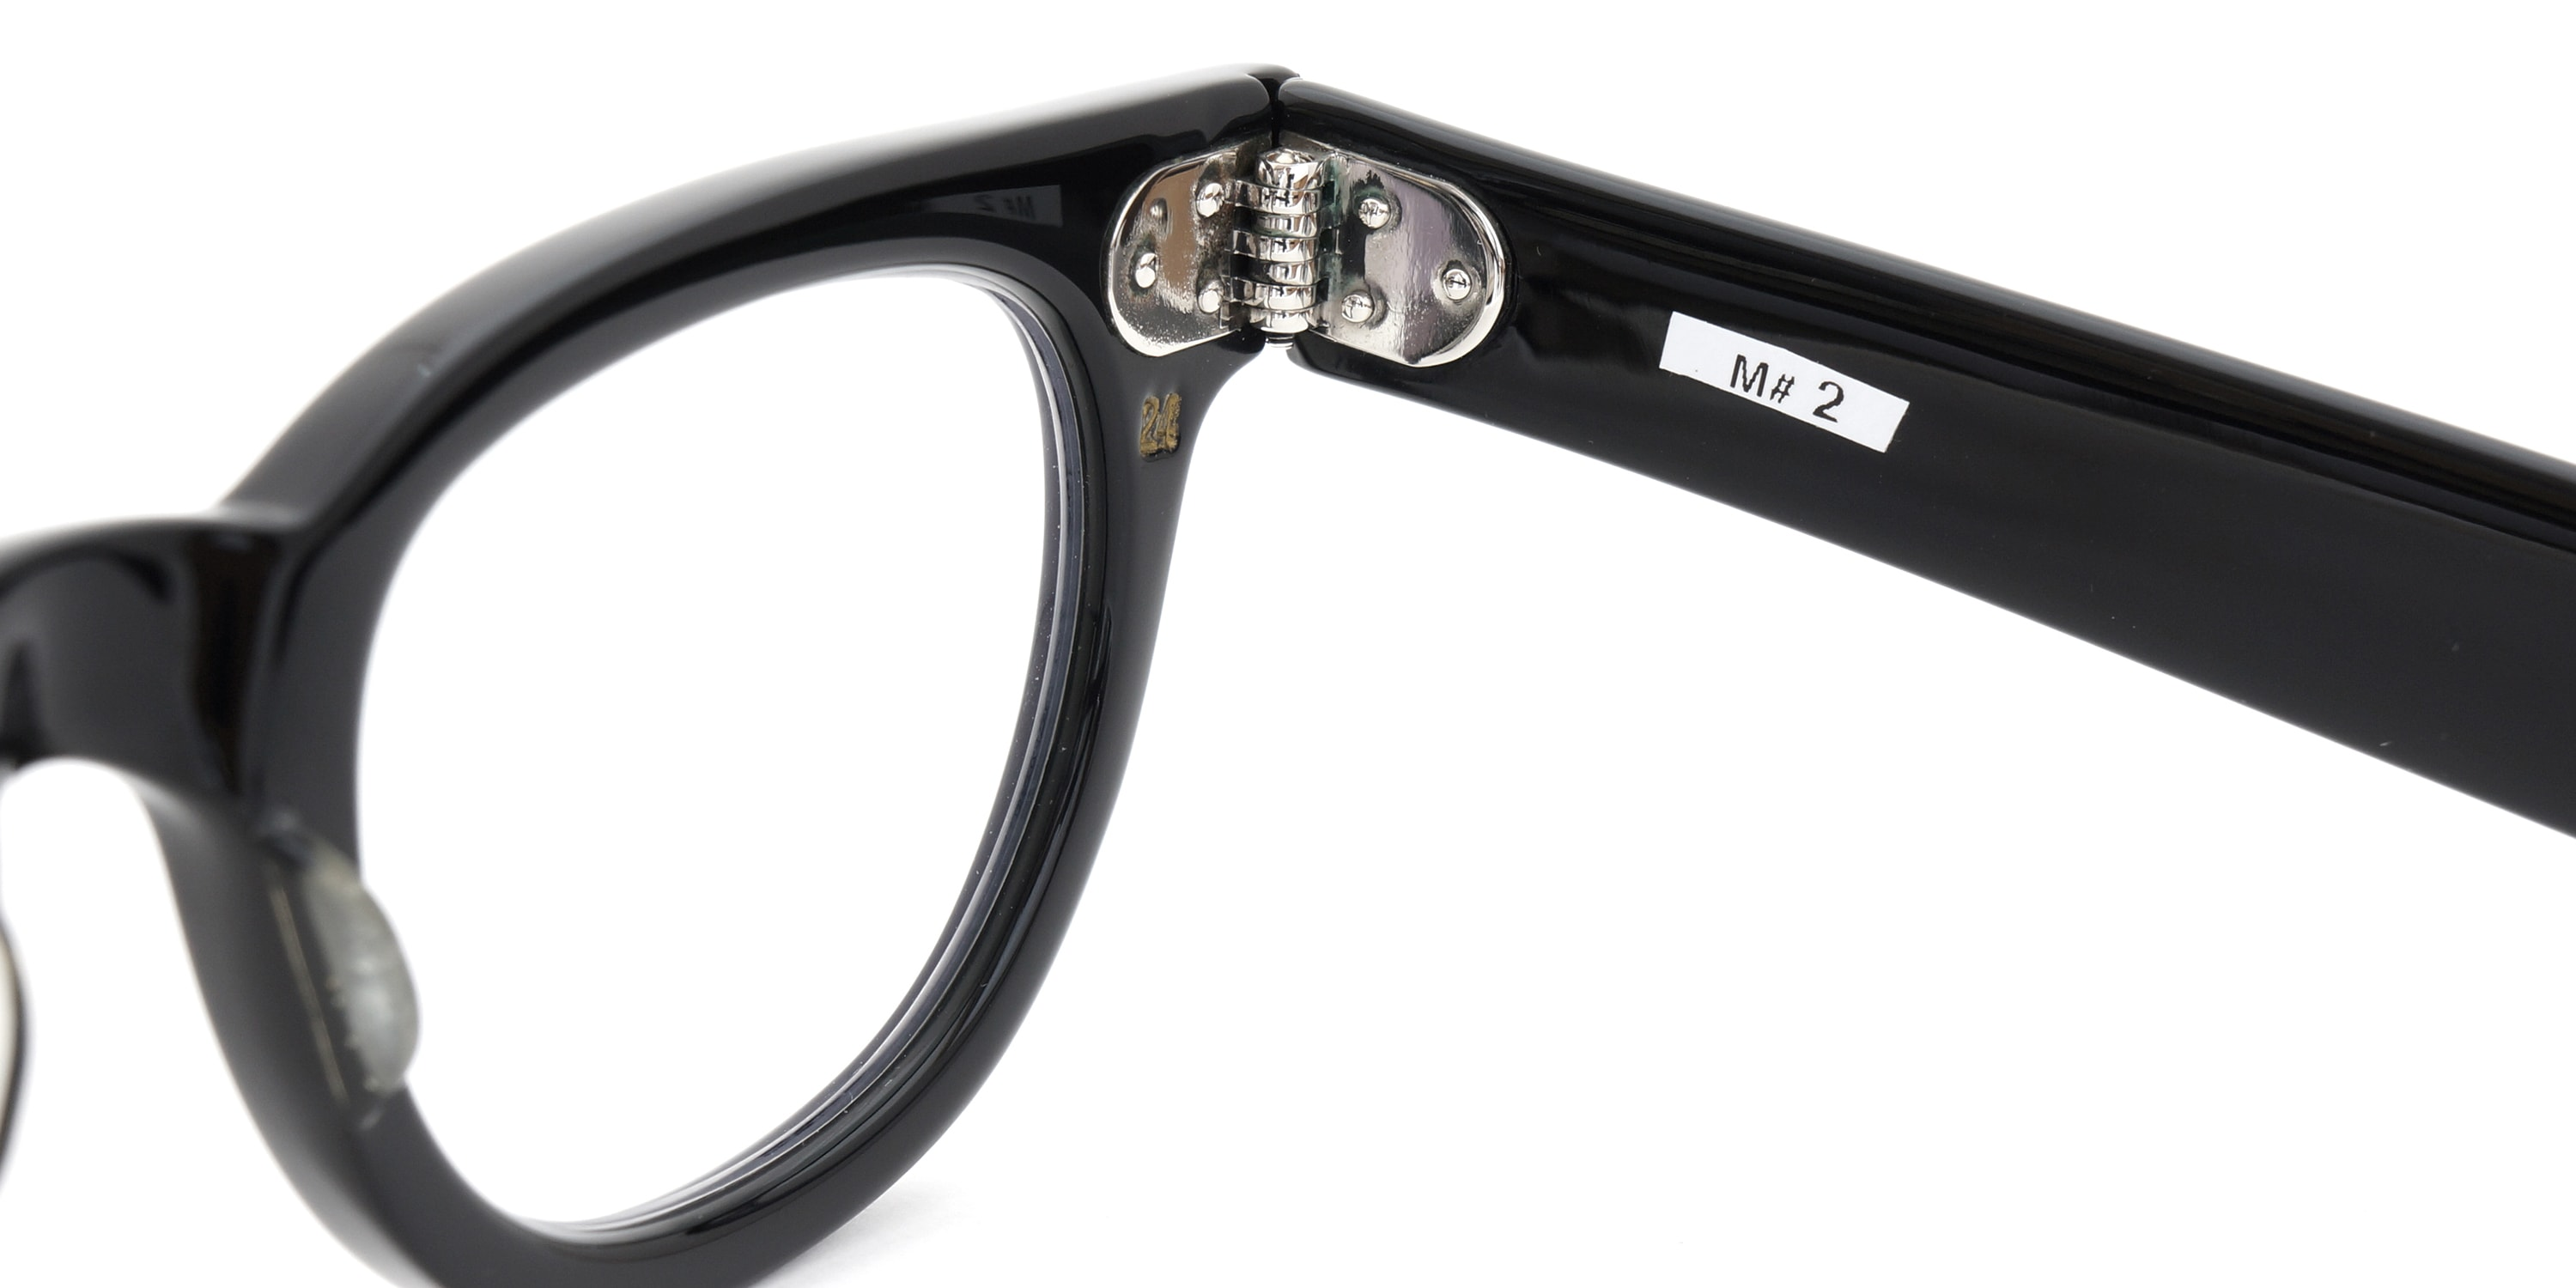 The Spectacle メガネ 1950s-70s TART OPTICAL FDR (FRAME USA) BLACK 44-24 イメージ12